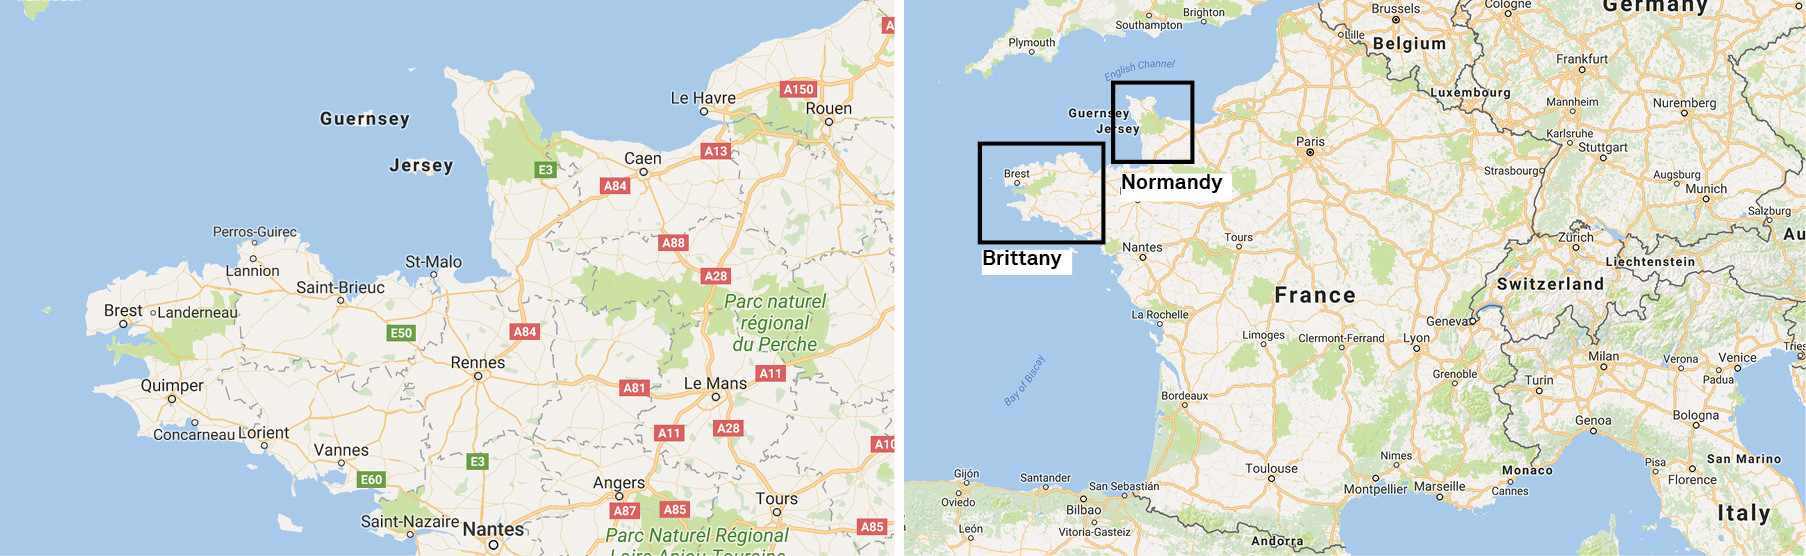 Map-Brittany-Normandy